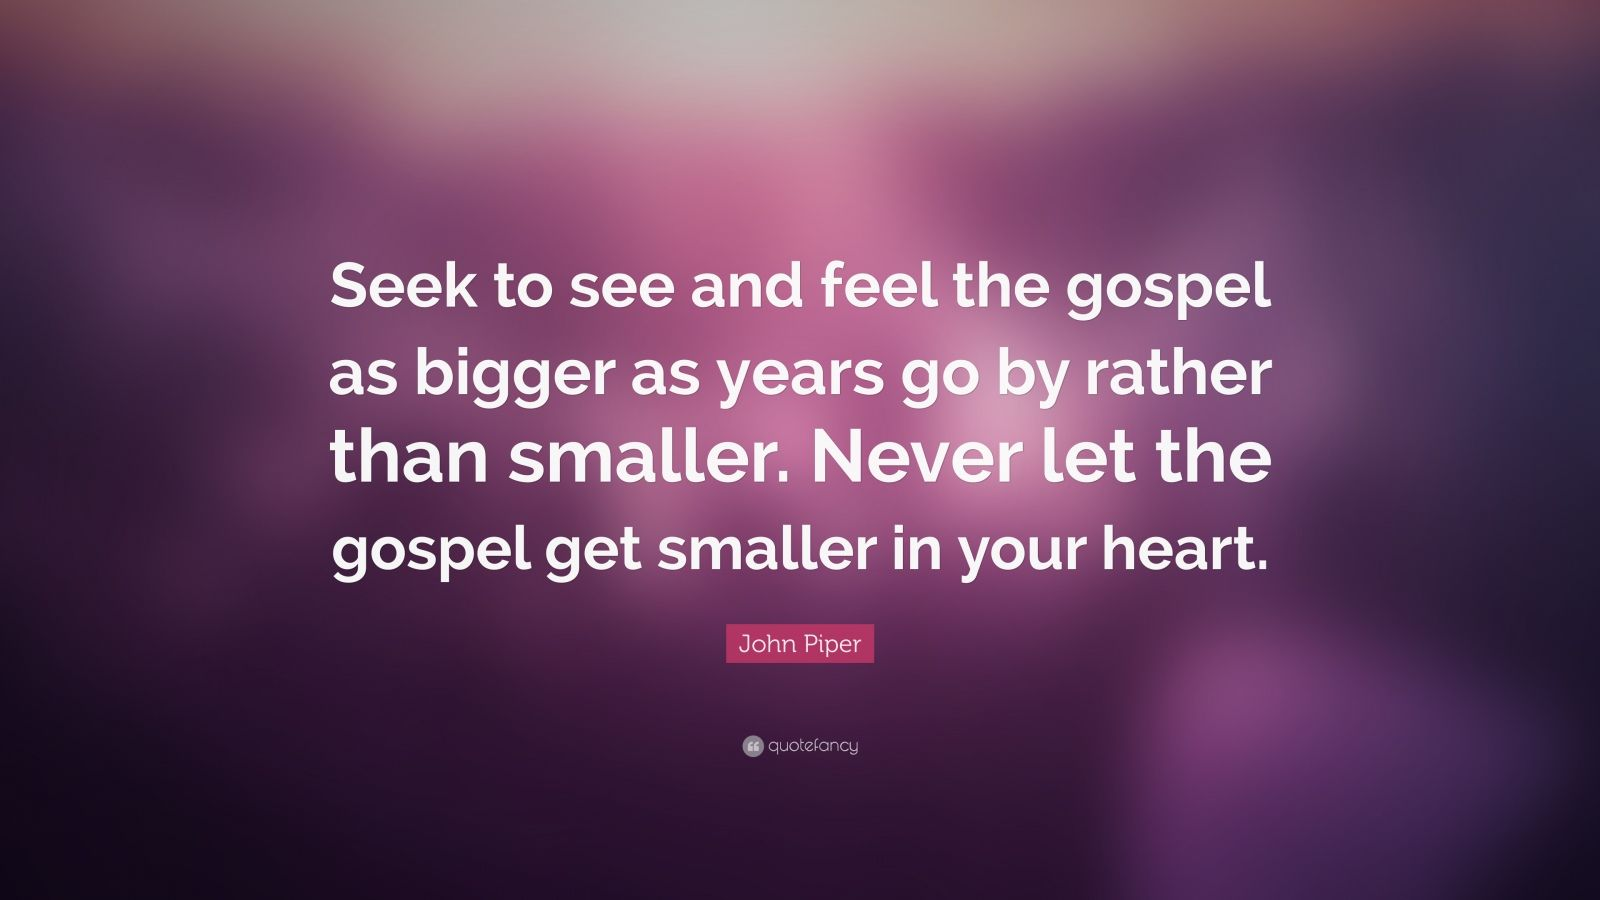 """John Piper Quote: """"Seek to see and feel the gospel as bigger as years go by rather than smaller. Never let the gospel get smaller in your heart."""""""